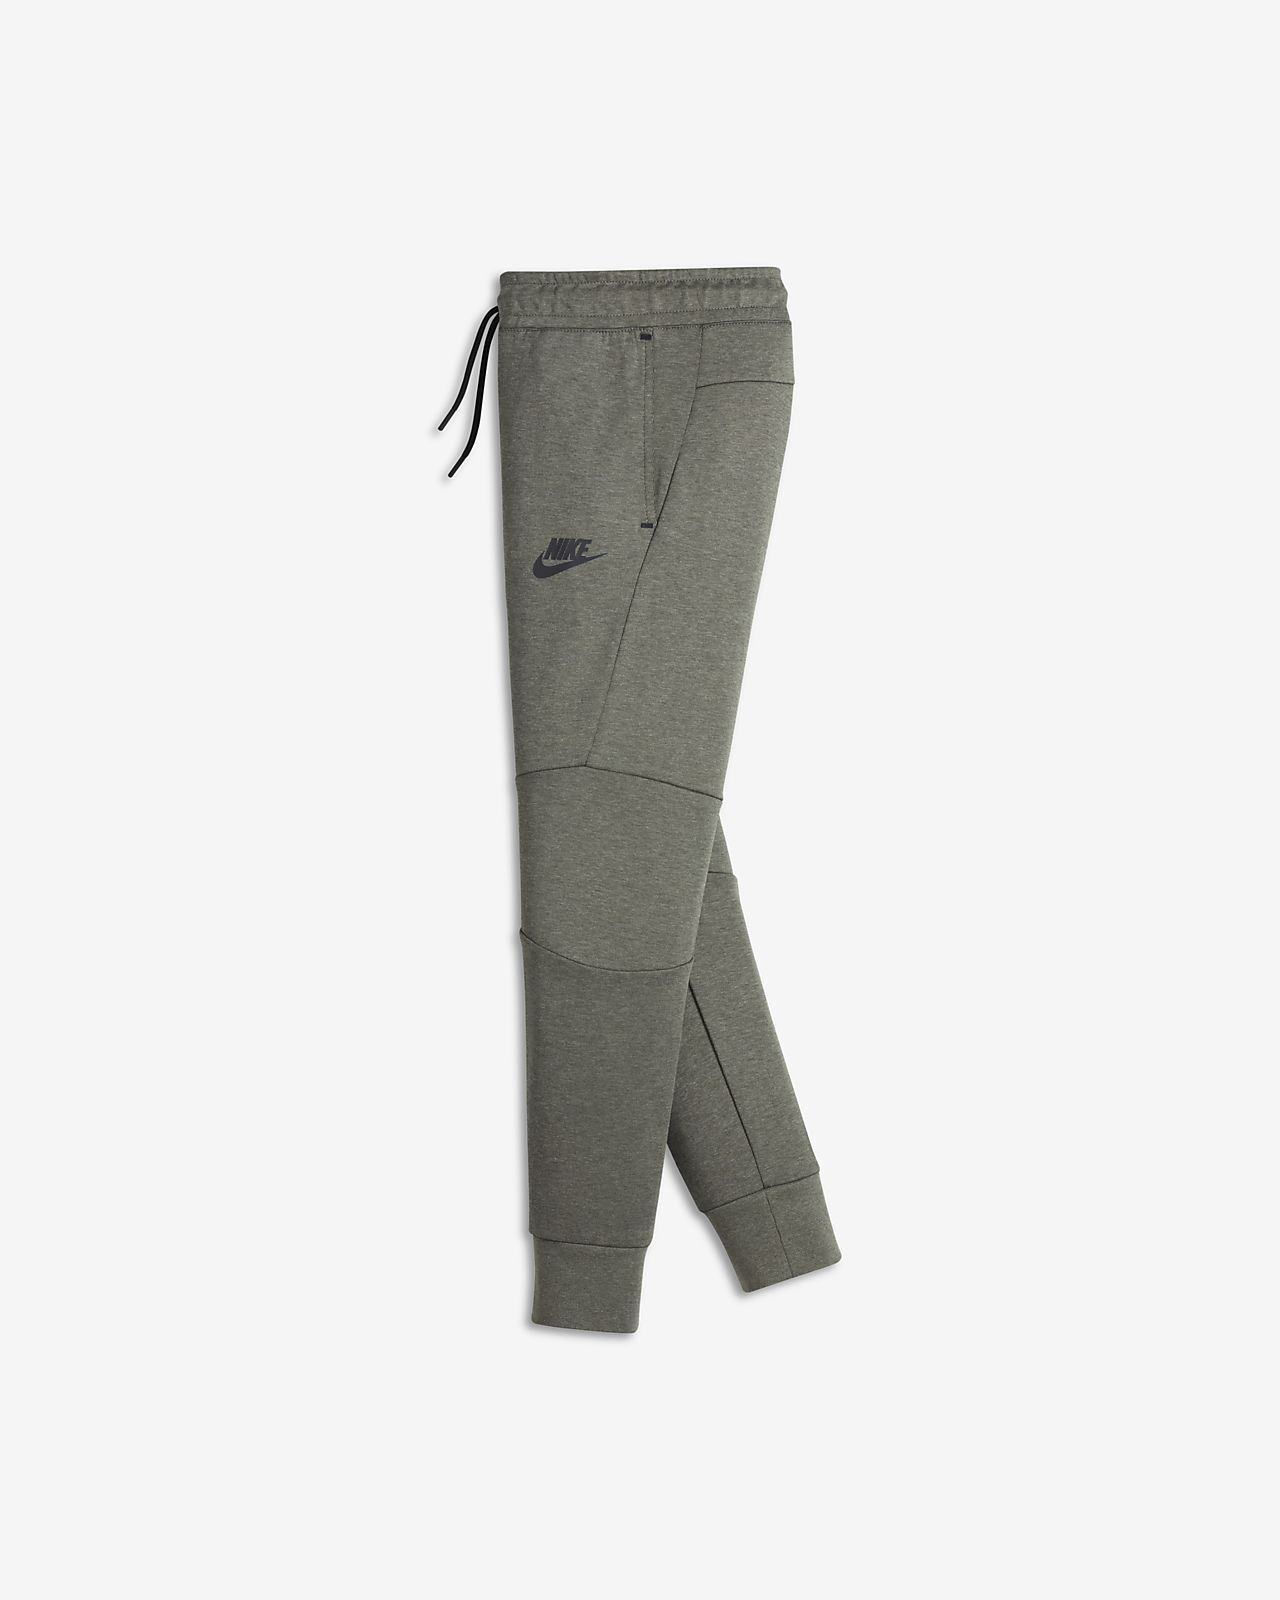 Pantalones Nike Sportswear Tech Fleece Big Para Ninos Mens Joggers Outfit Men Fashion Casual Outfits Nike Clothes Mens